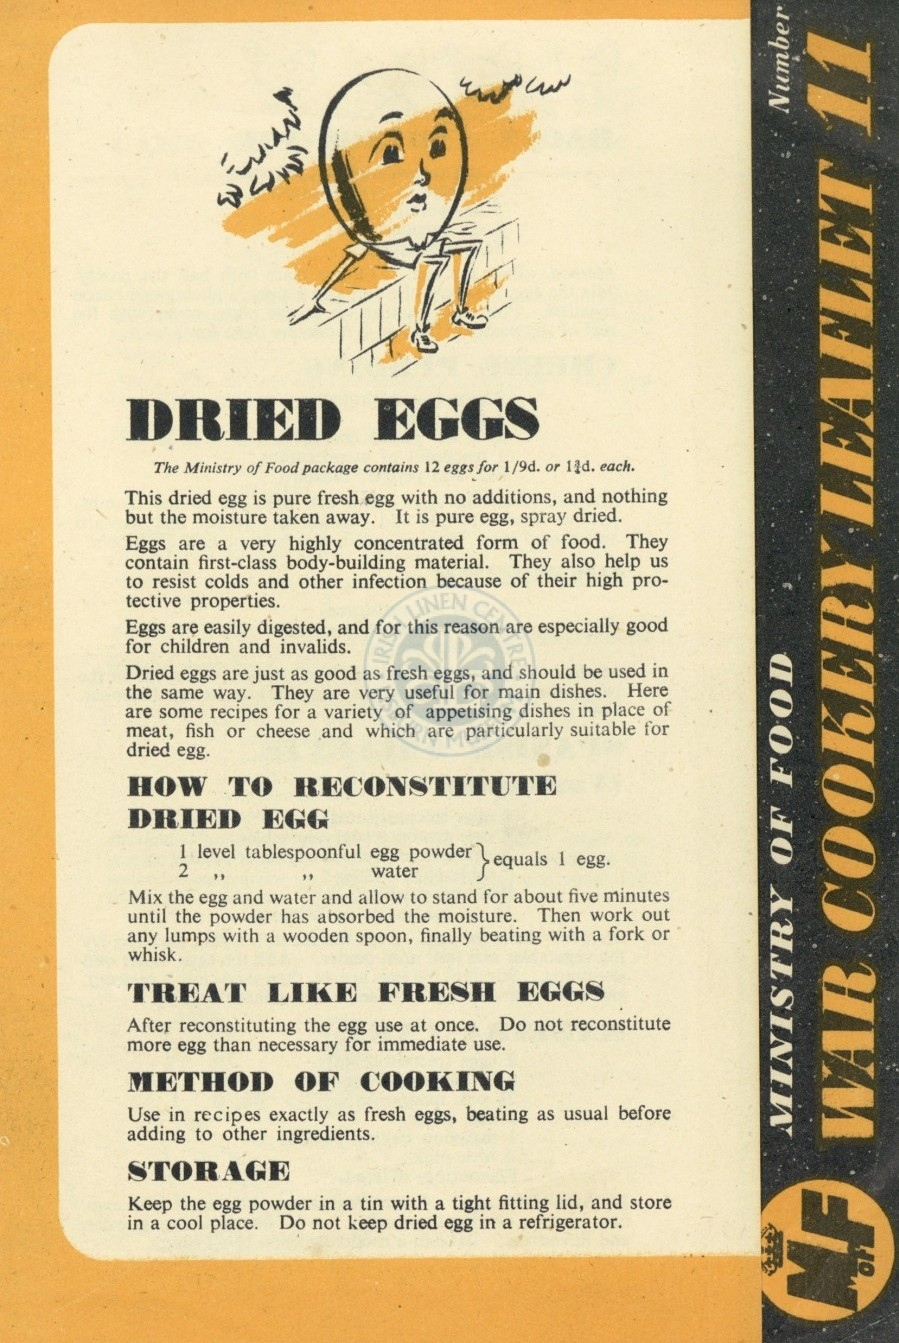 Dried Eggs